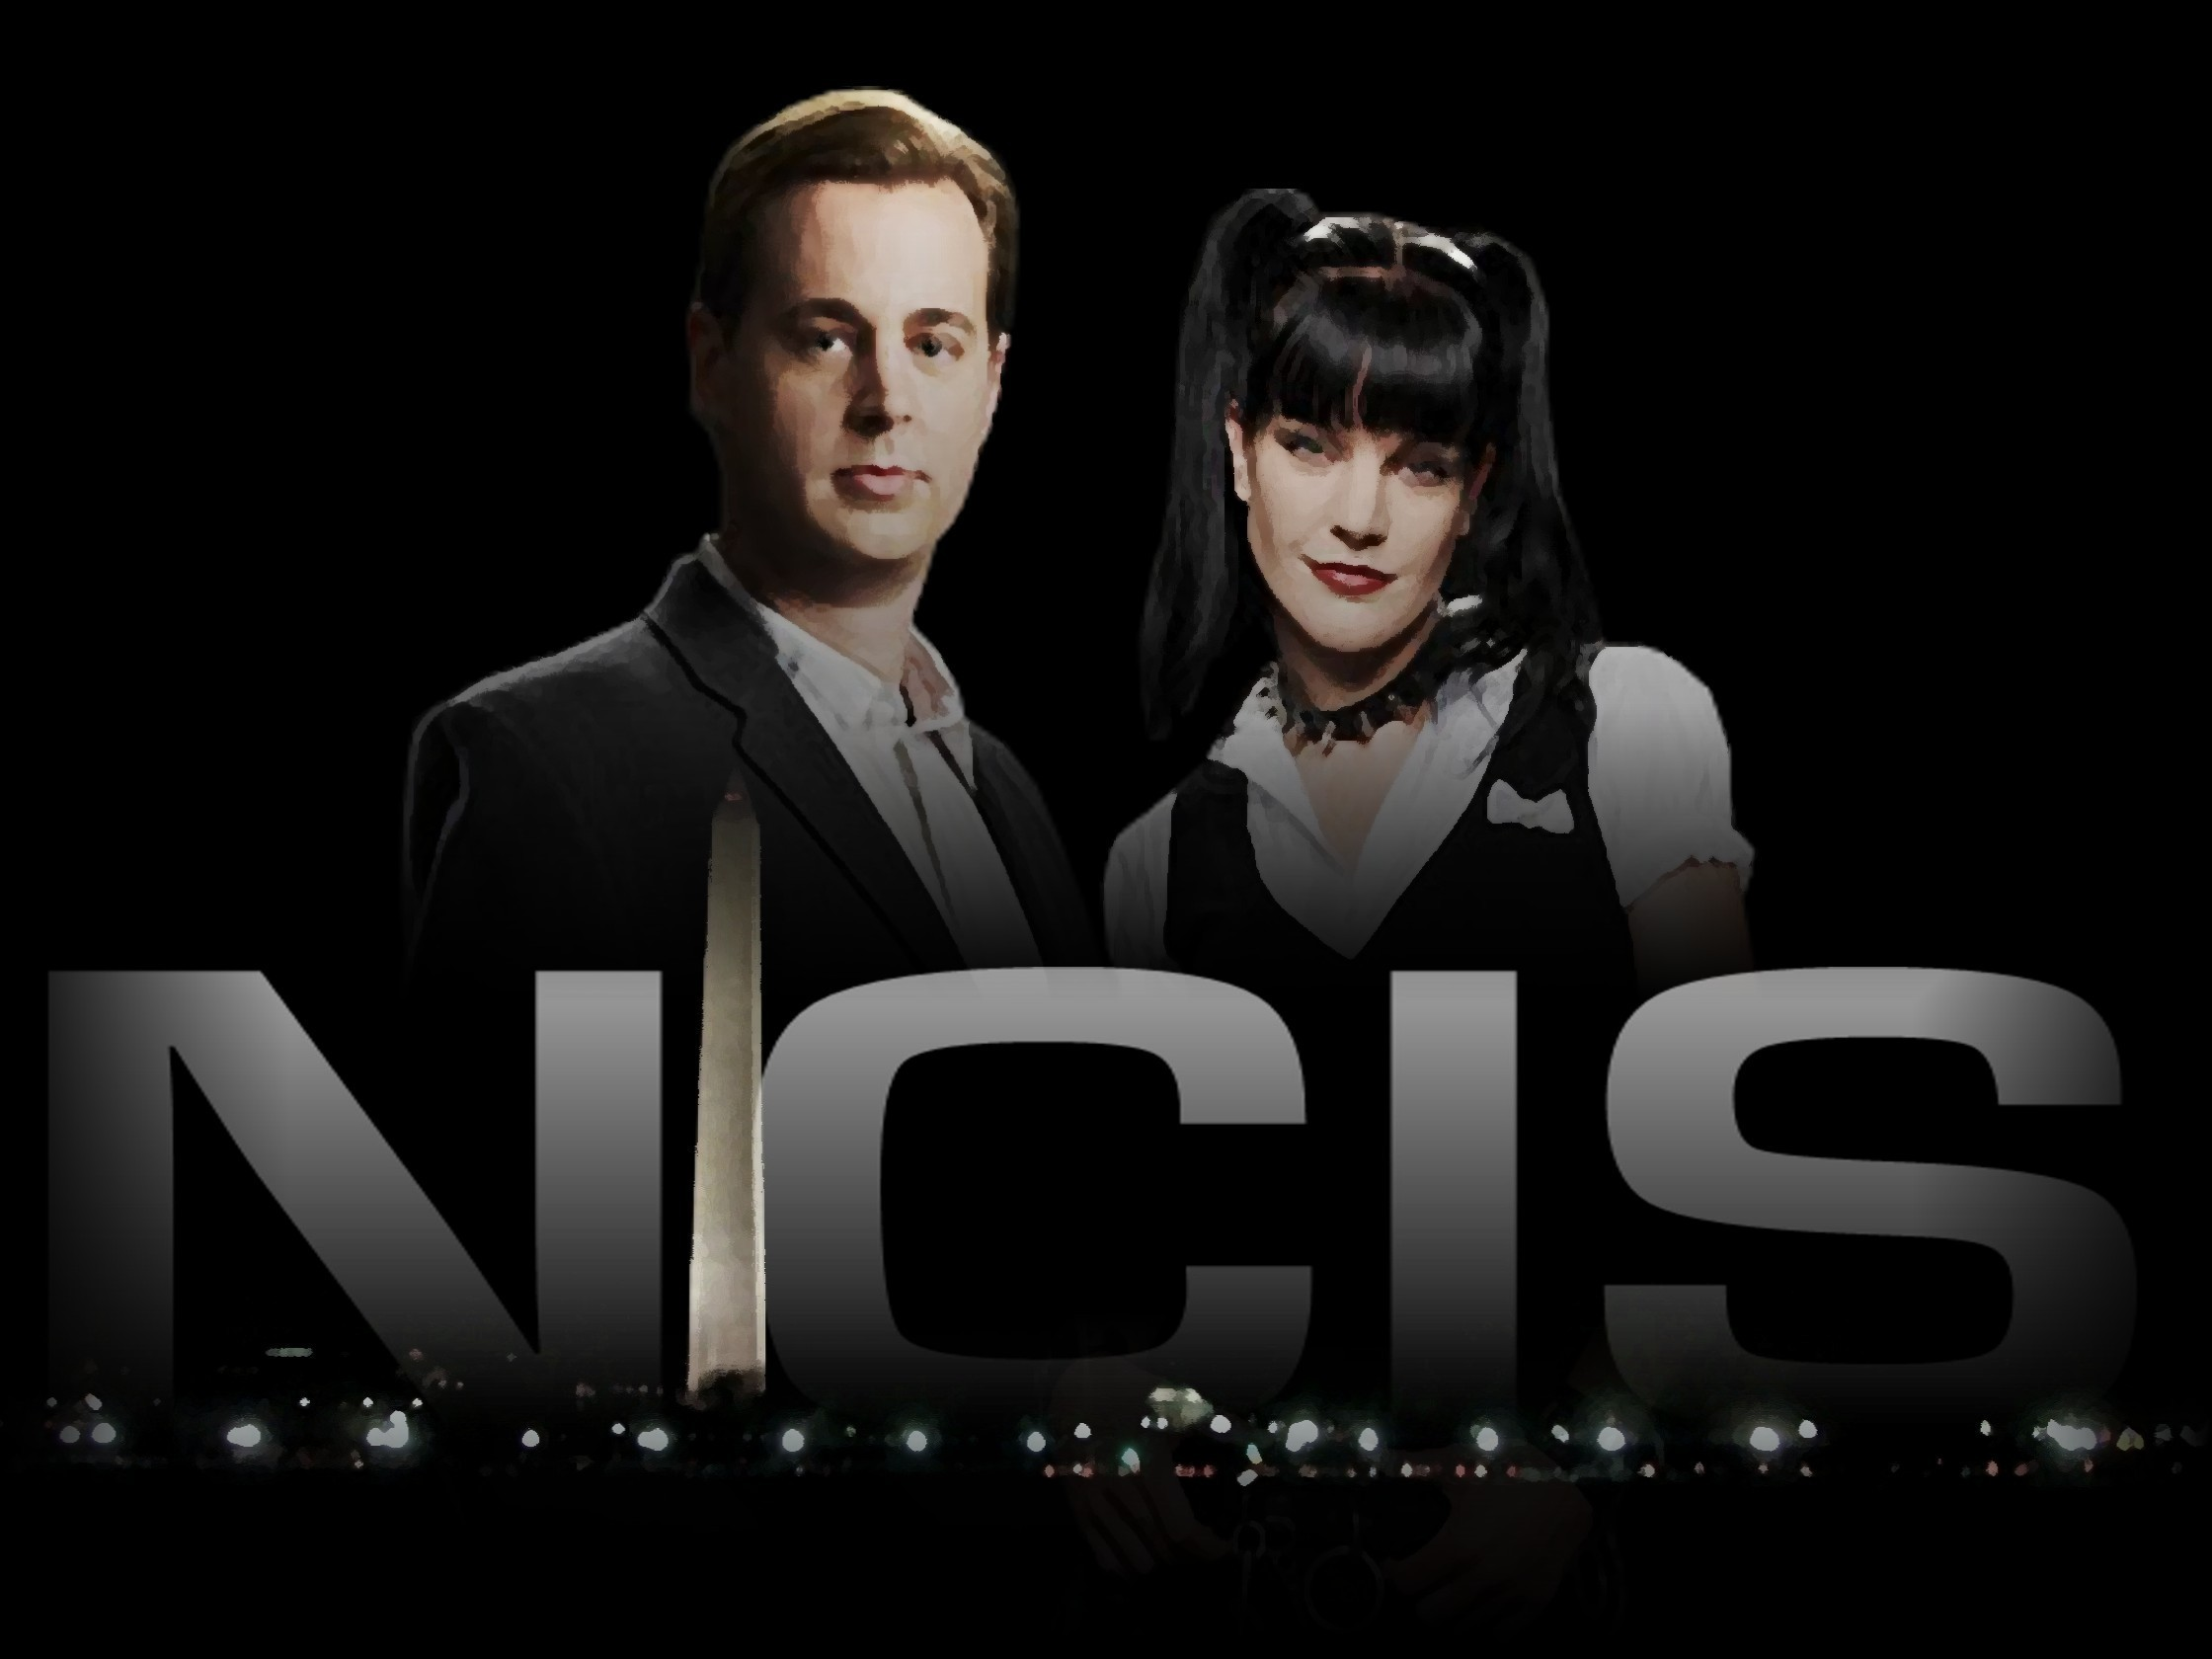 ncis mcgee dating Watch series - ncis - season 14 visit for the thanksgiving holiday and pester her co-workers to find out who she is dating he enlists mcgee and the ncis team.